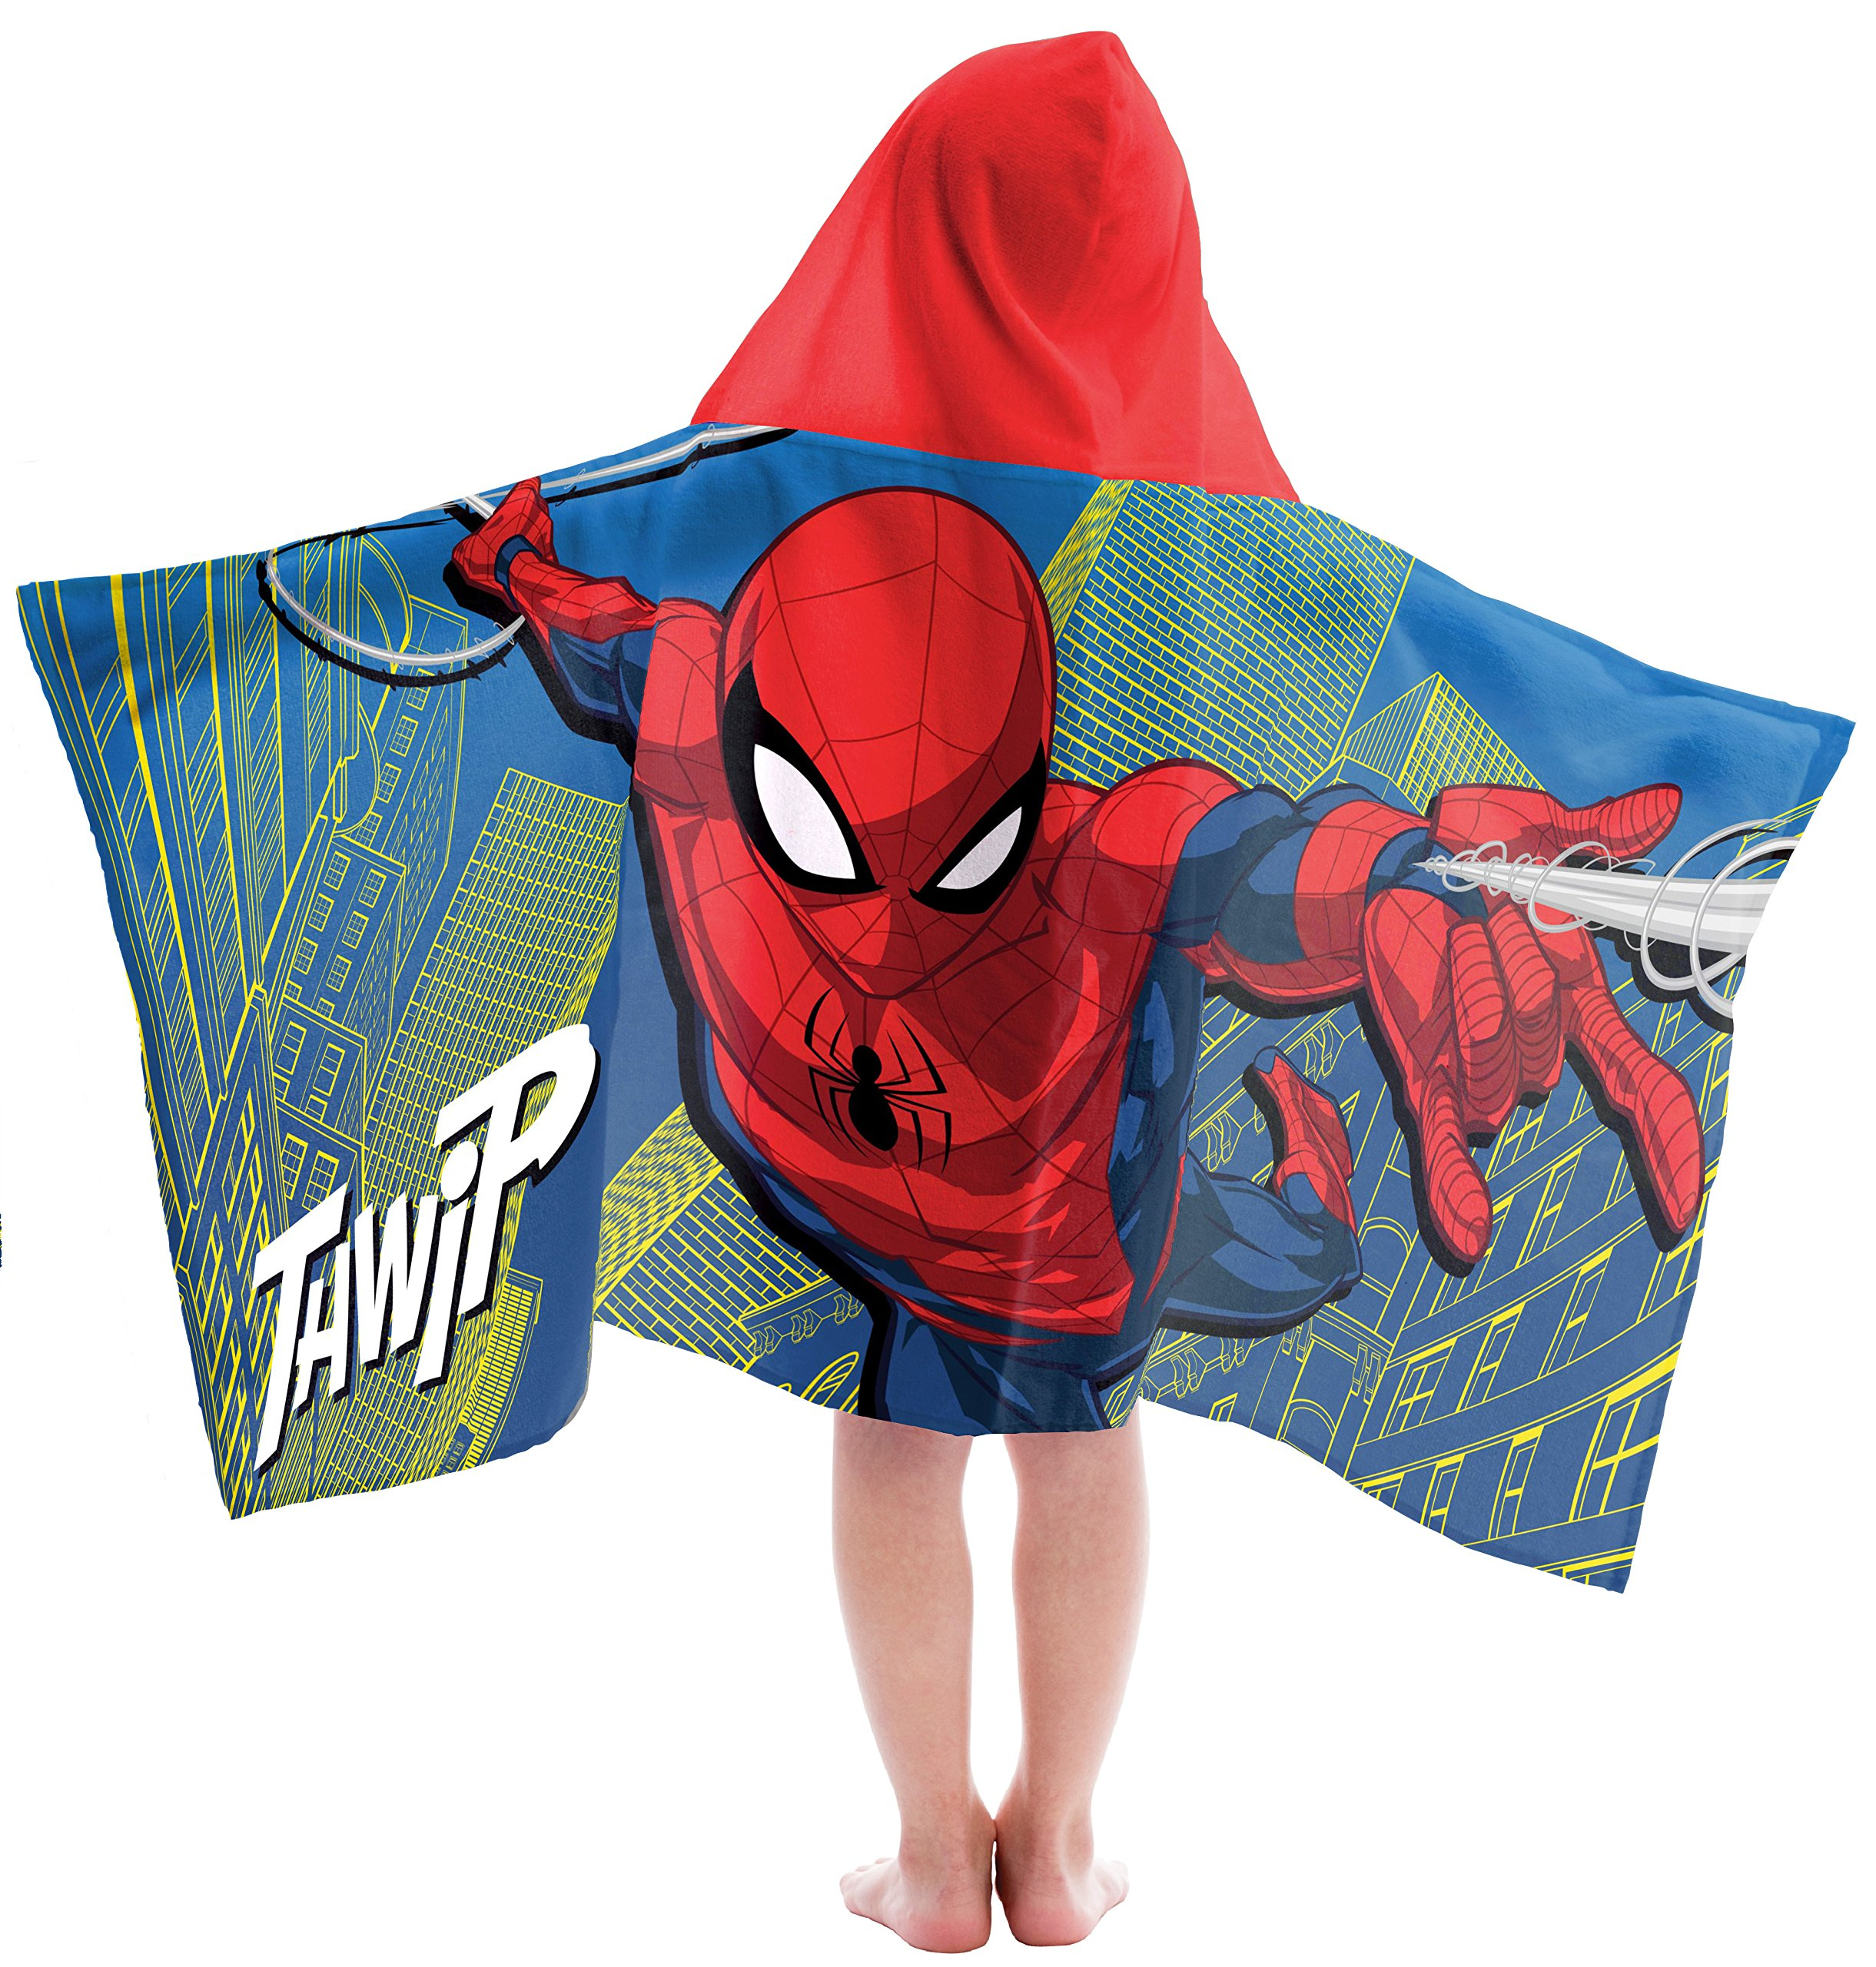 Jay Franco Marvel Spiderman Thwip Kids Bath/Pool/Beach Towel - Super Soft & Absorbent Fade Resistant Cotton Towel, Measures 22 inch x 51 inch (Official Marvel Product) by Jay Franco